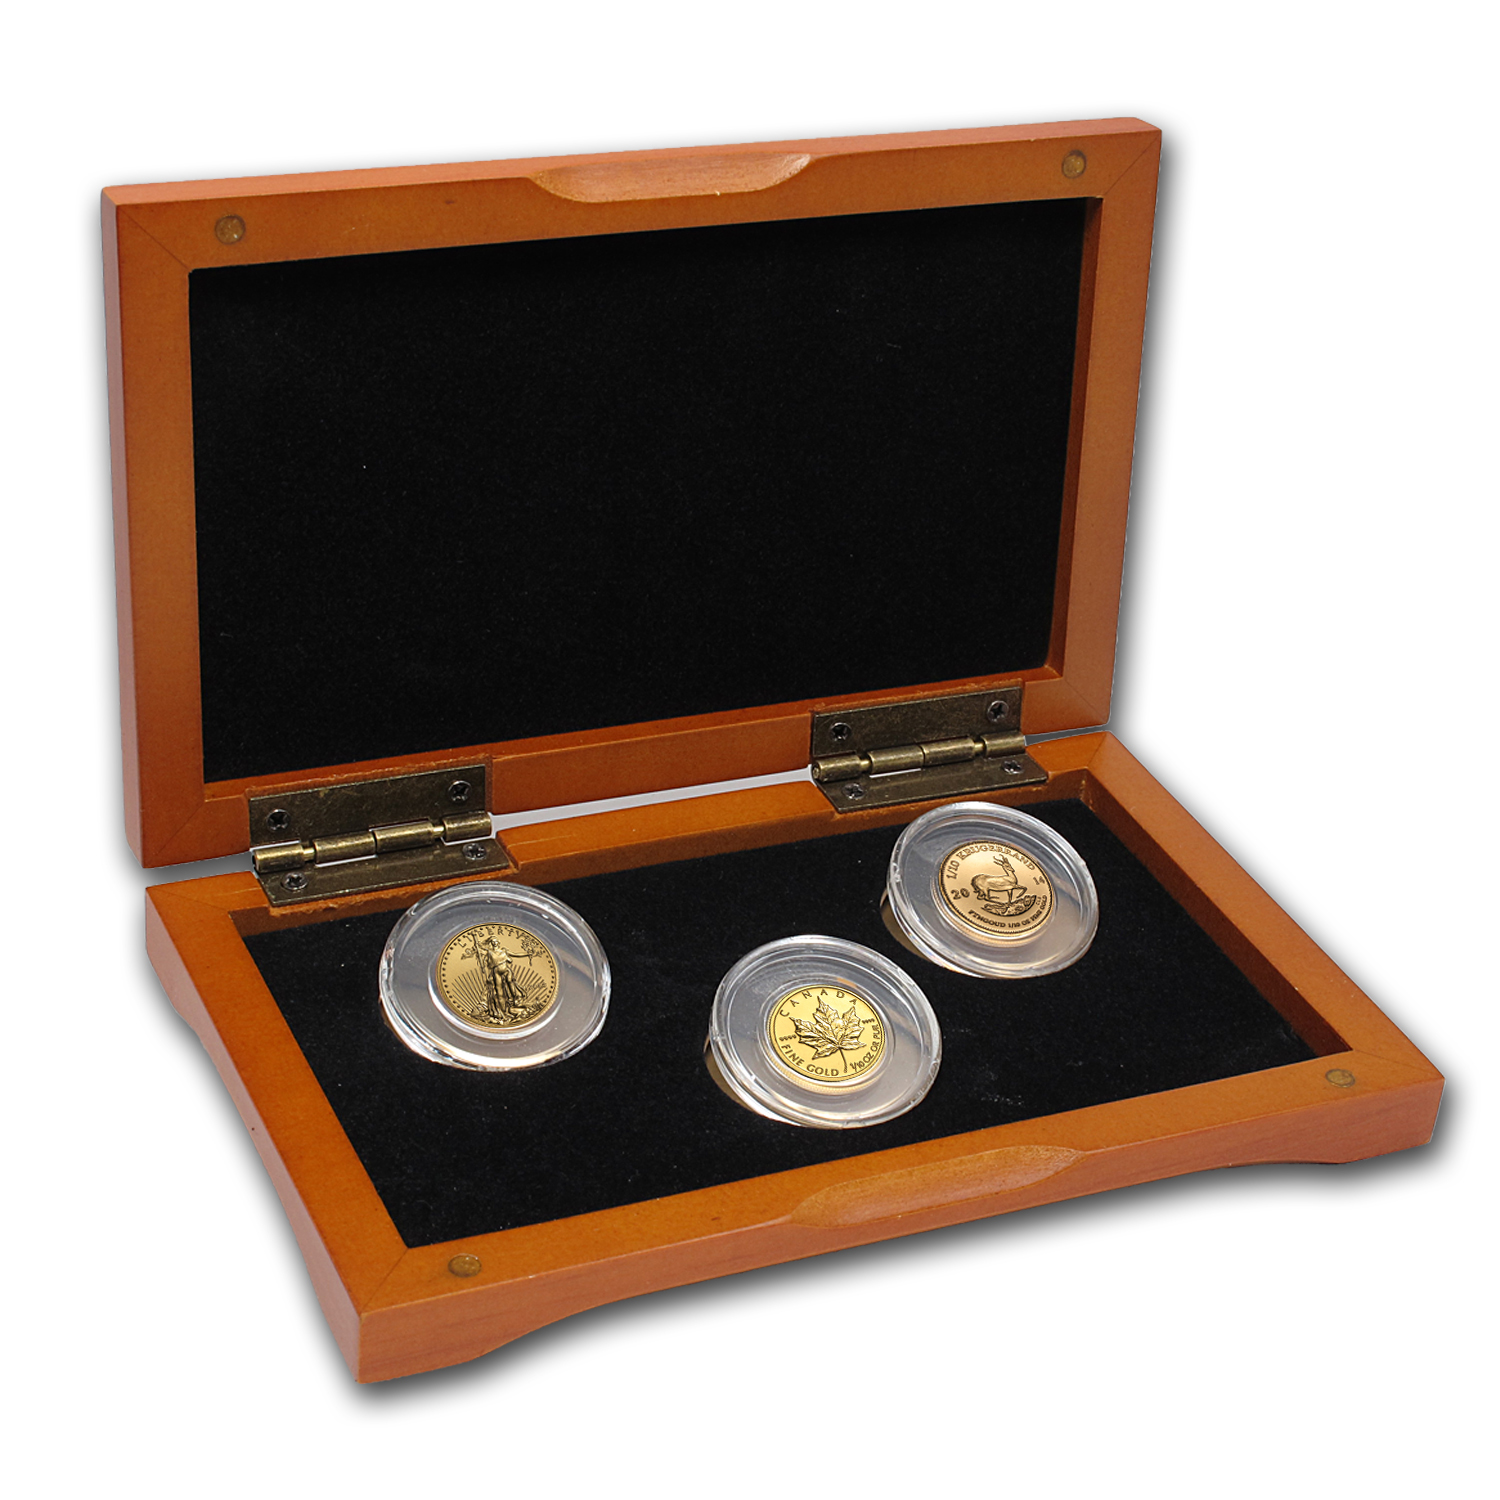 2014 3-Coin 1/10 oz Gold Mini-Sampler Pack for New Investors